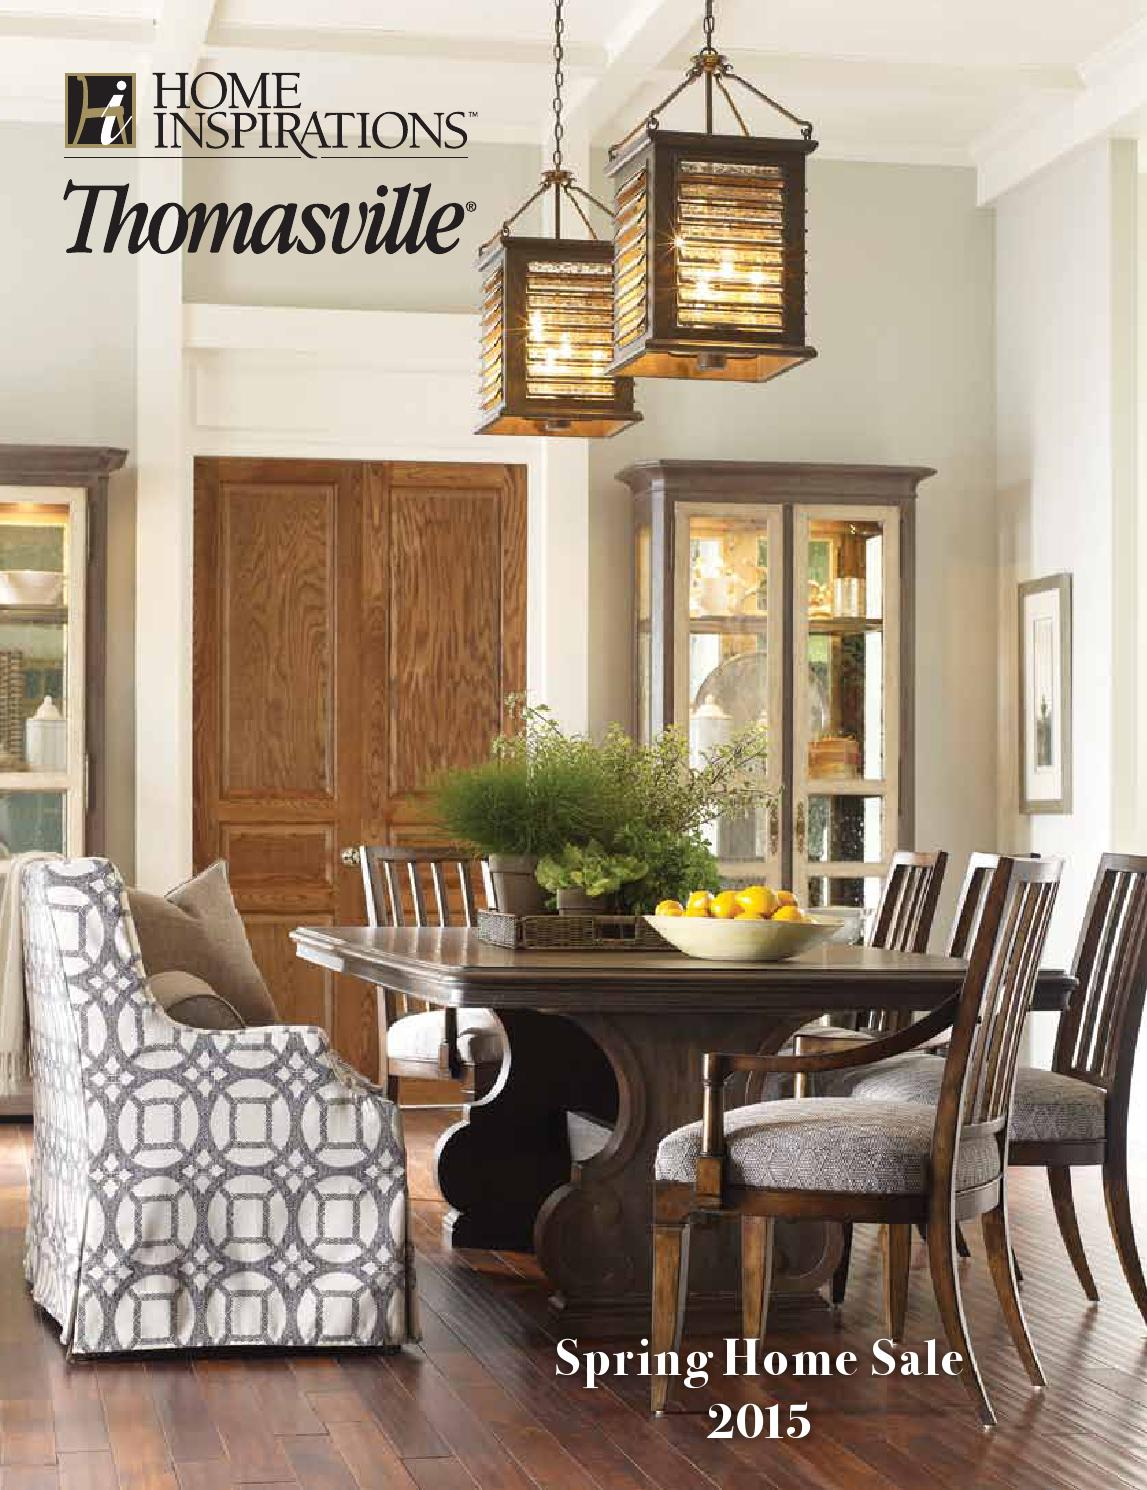 Home Inspirations Thomasville Spring Home Sale 2015 By